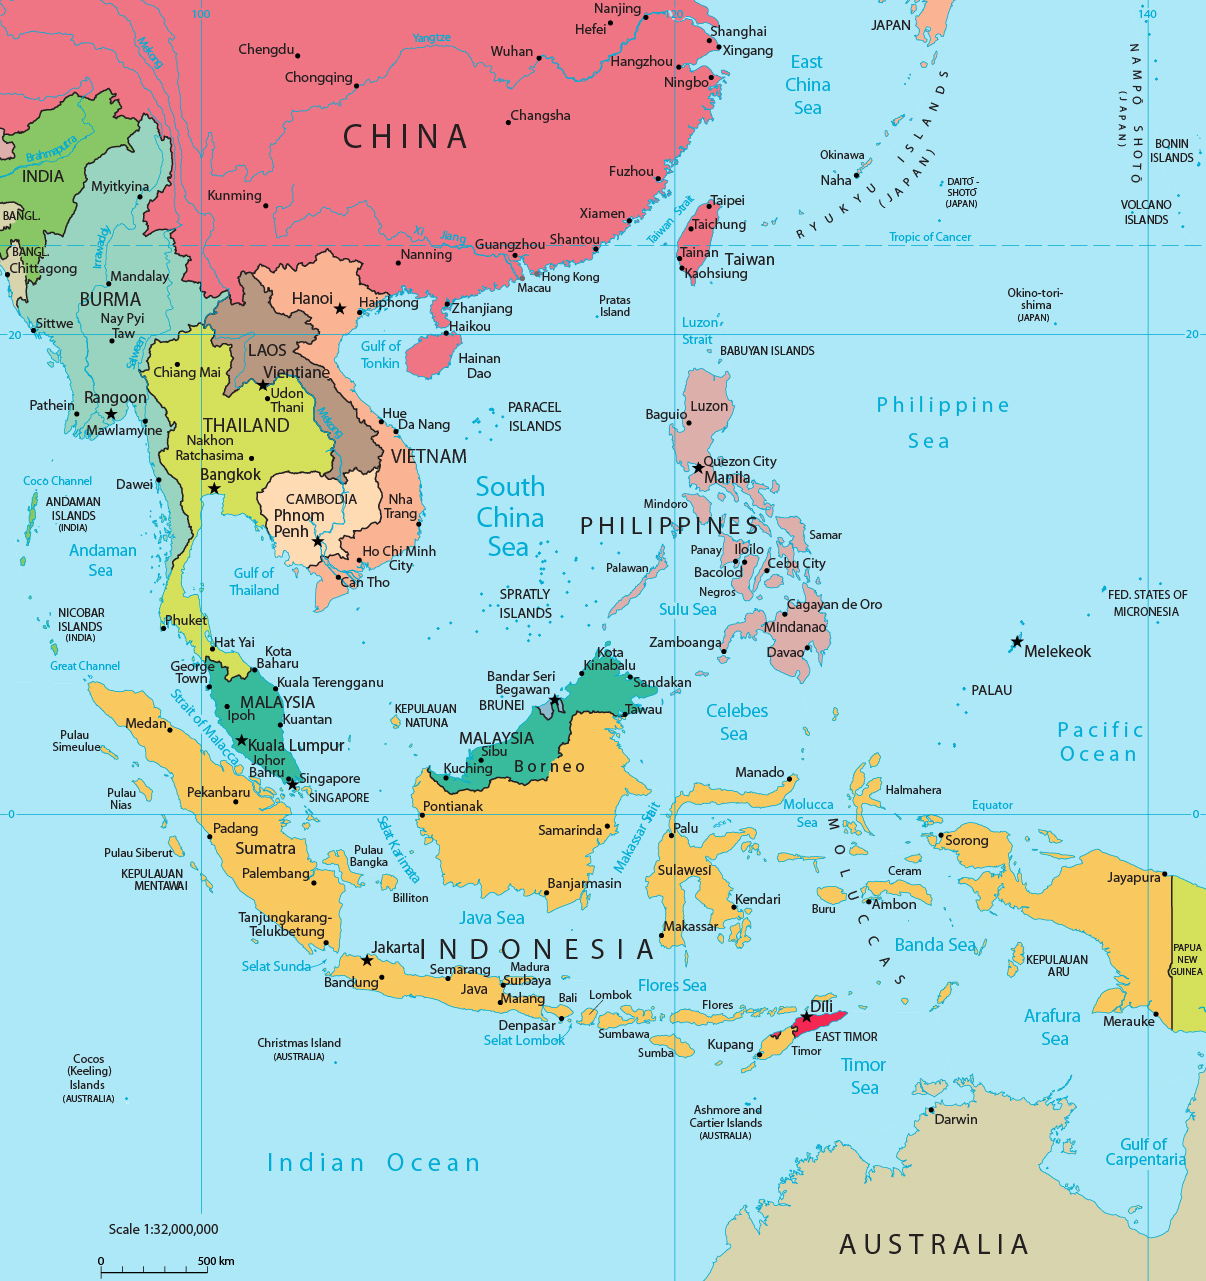 Map of southeast asia indonesia malaysia thailand southeast asia map gumiabroncs